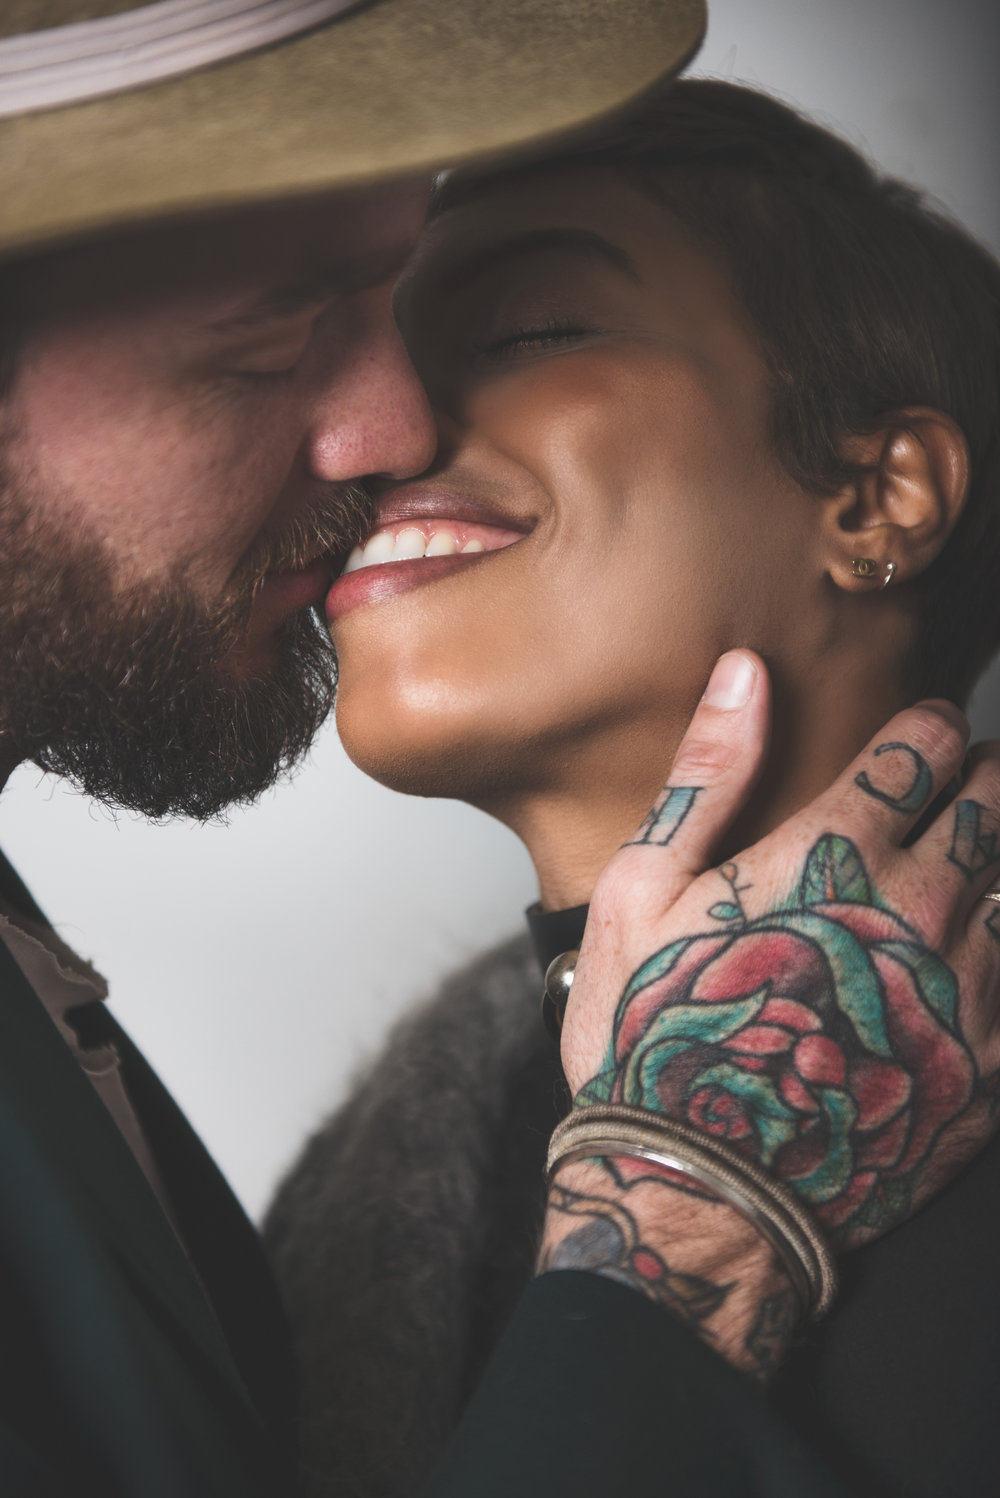 COUPLES-PORTRAITS-PORTLAND-THE-YODSUKARS